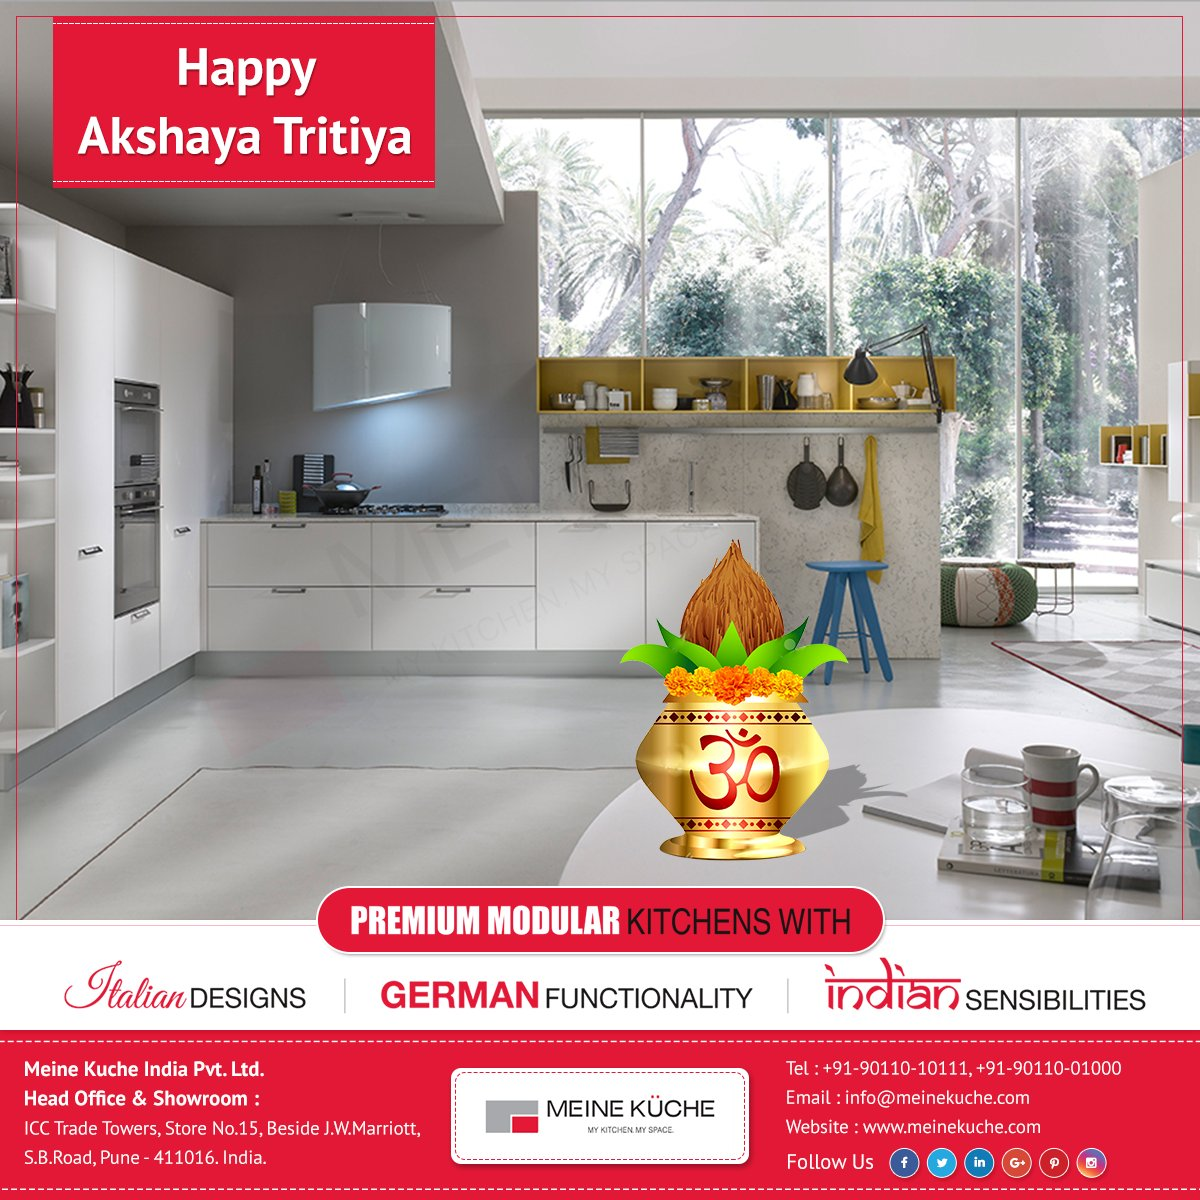 happyakshyatritiya hashtag on Twitter